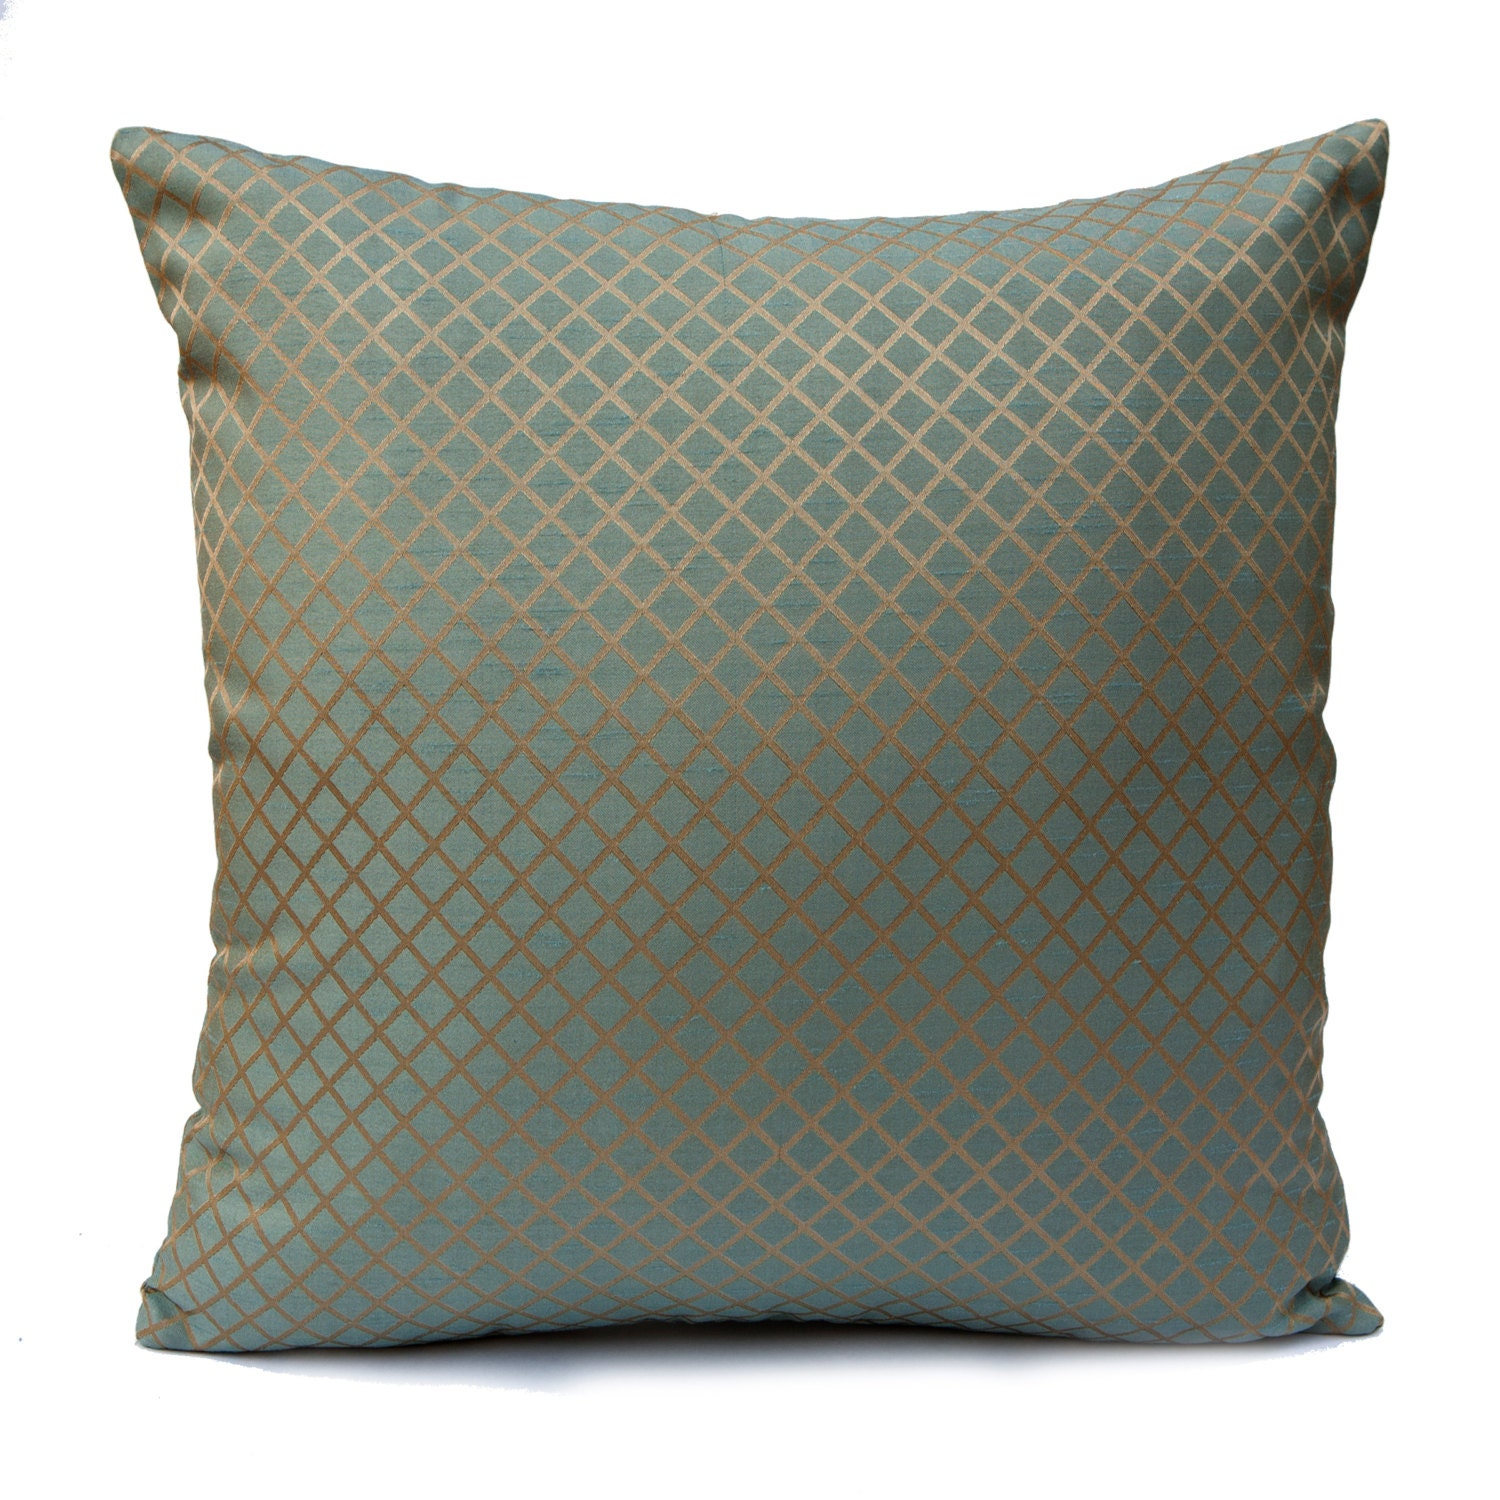 Blue and Beige Pillow Throw Pillow Cover Decorative Pillow